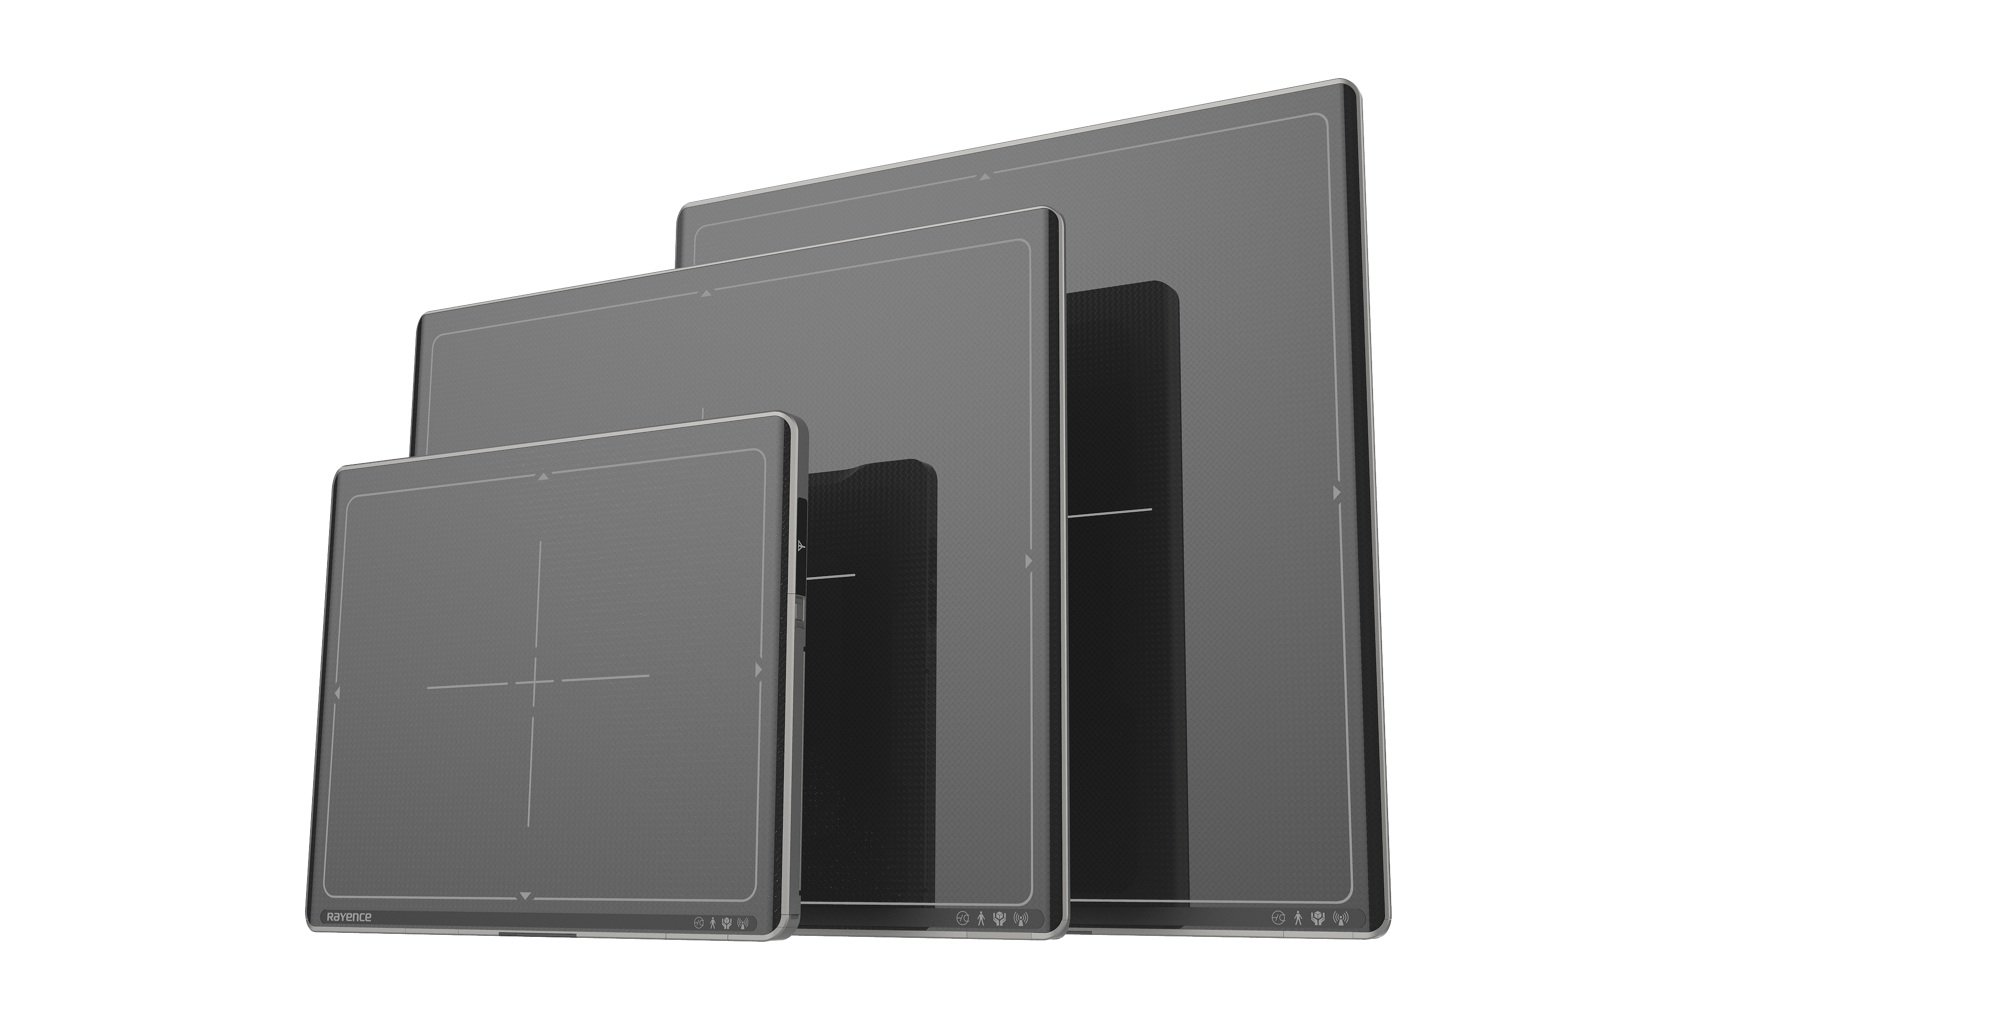 Flat Panel Medical X-Ray Detectors Outperforming CR, CCD and Analog  Counterparts   Imaging Technology News